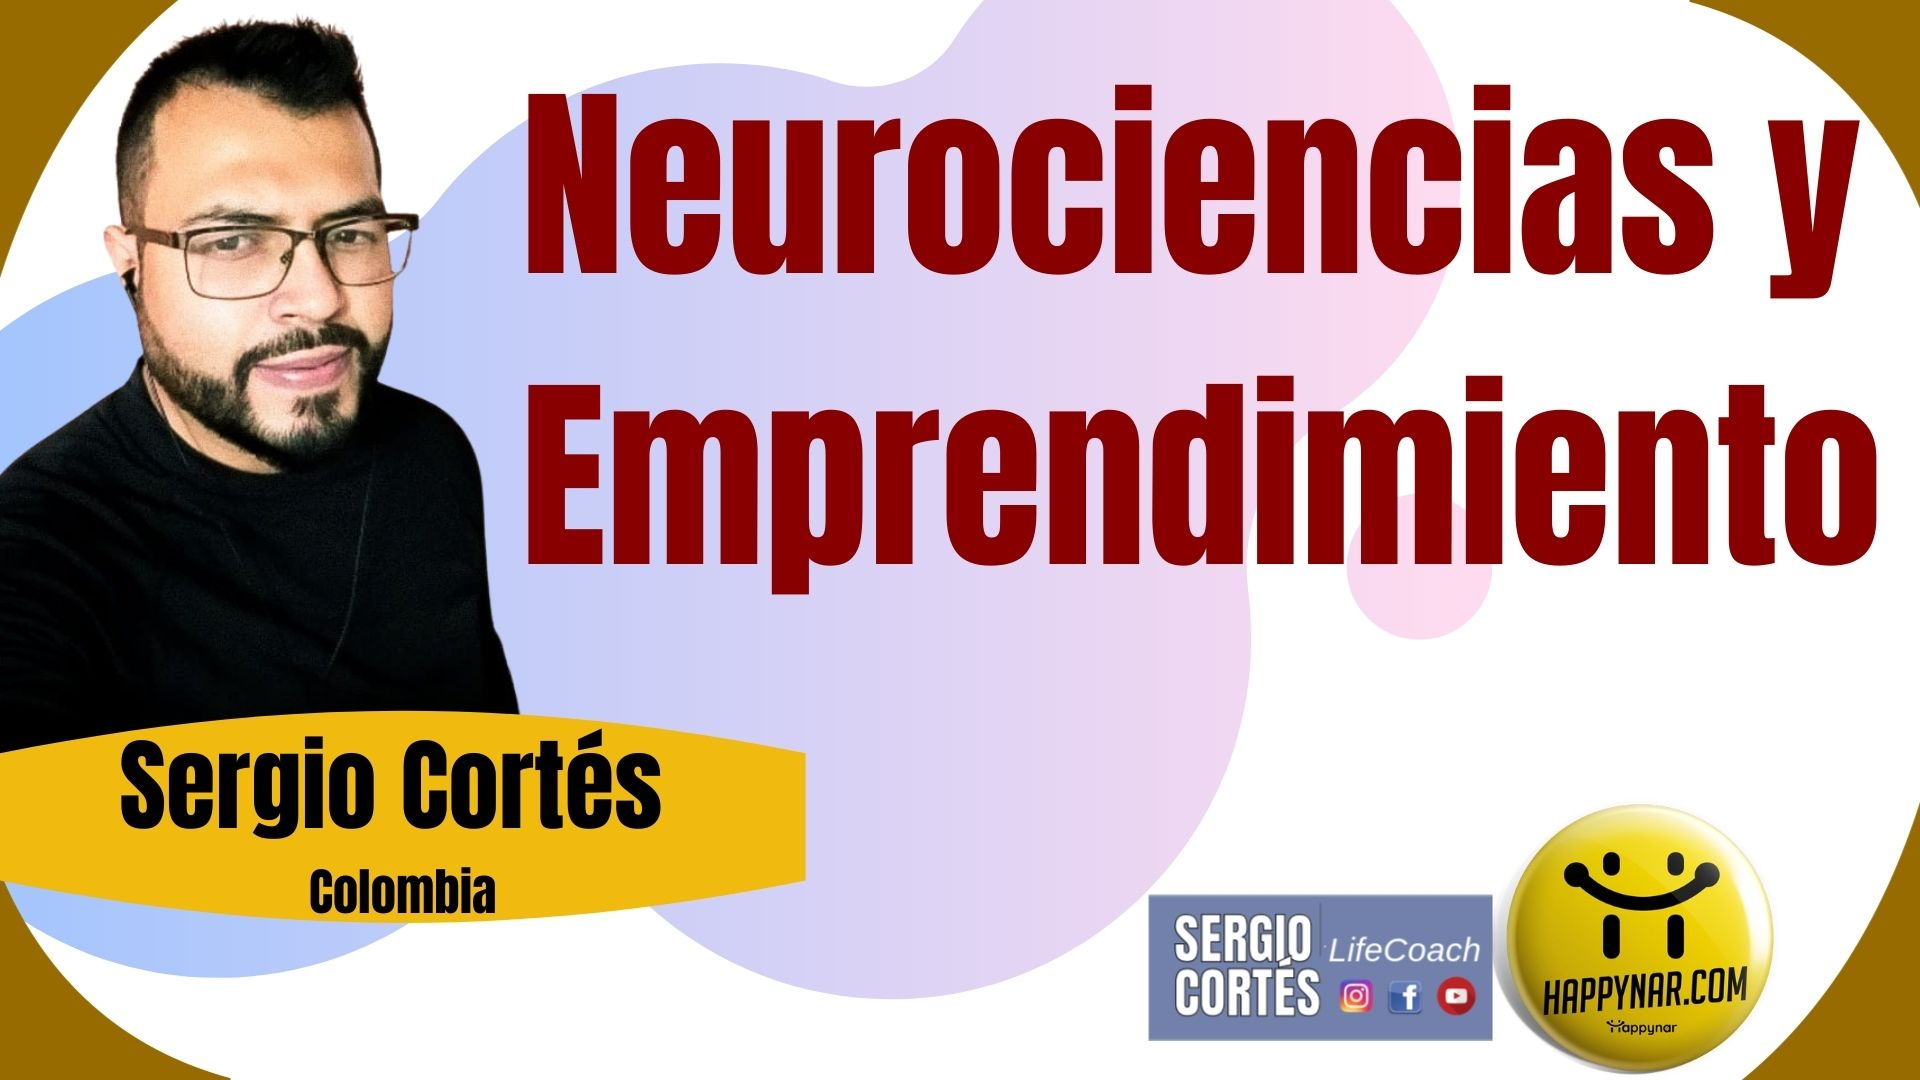 Neurociencias y Emprendimiento